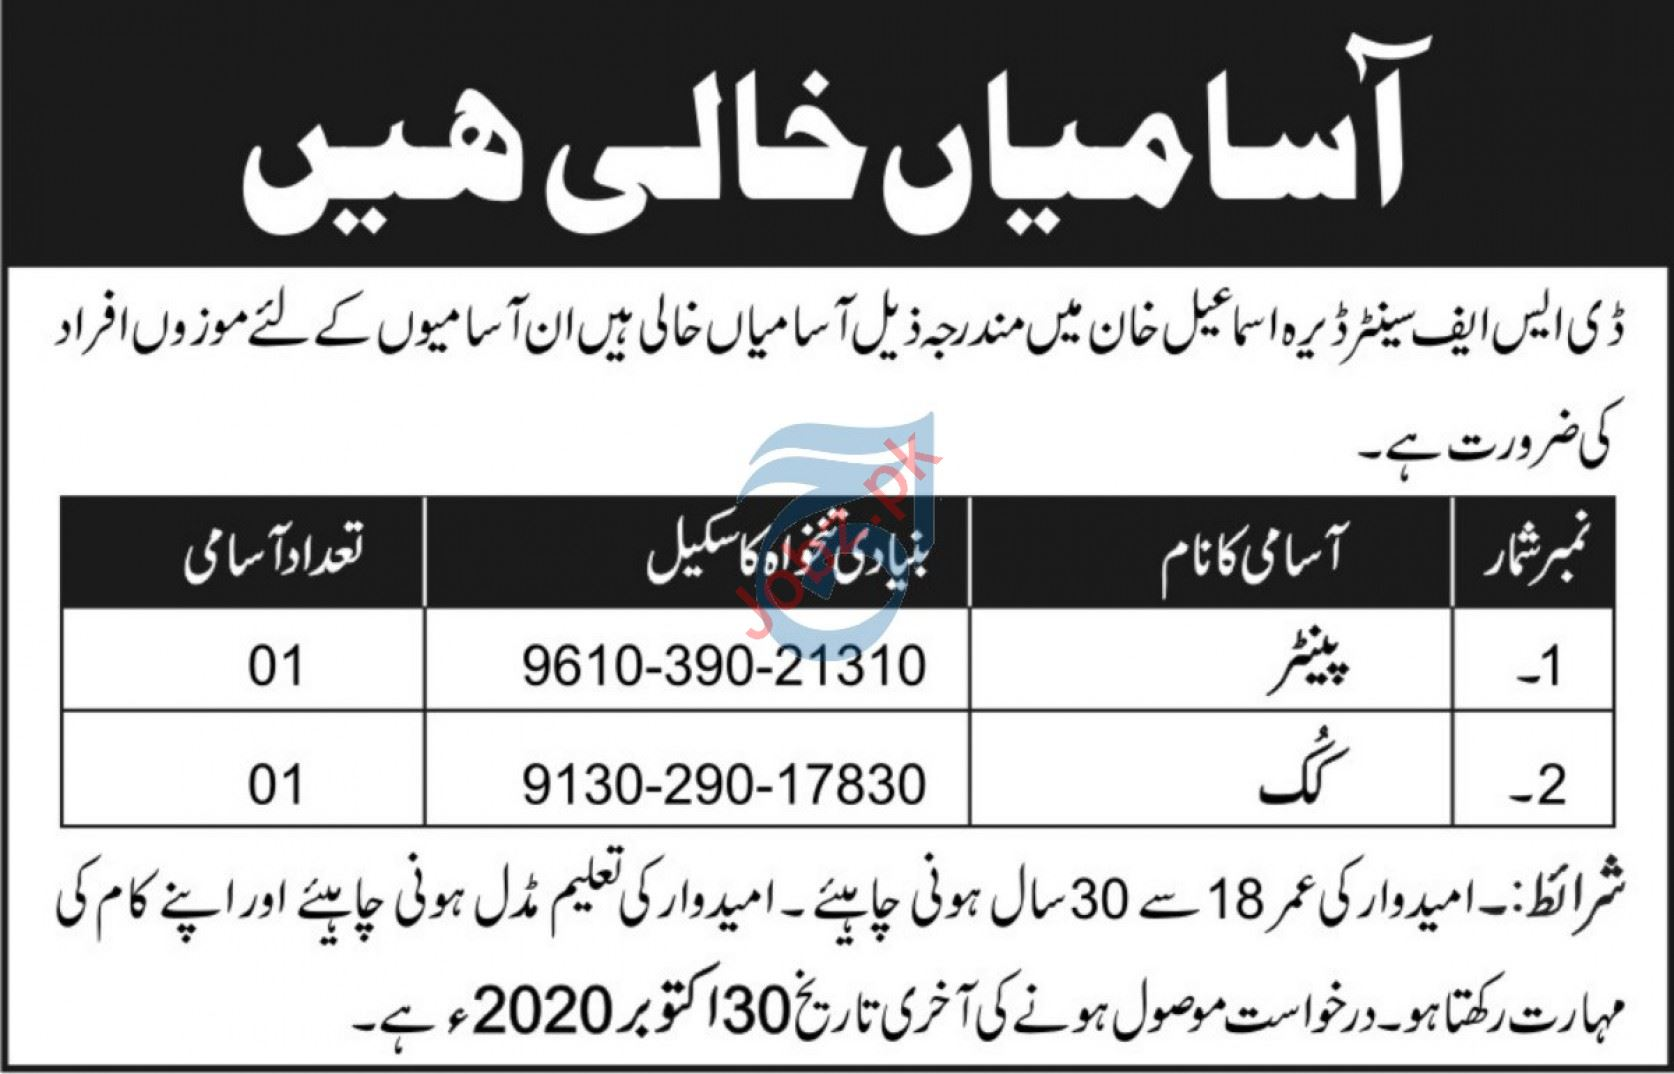 Pakistan Army DSF Centre DI Khan Jobs 2020 for Cook